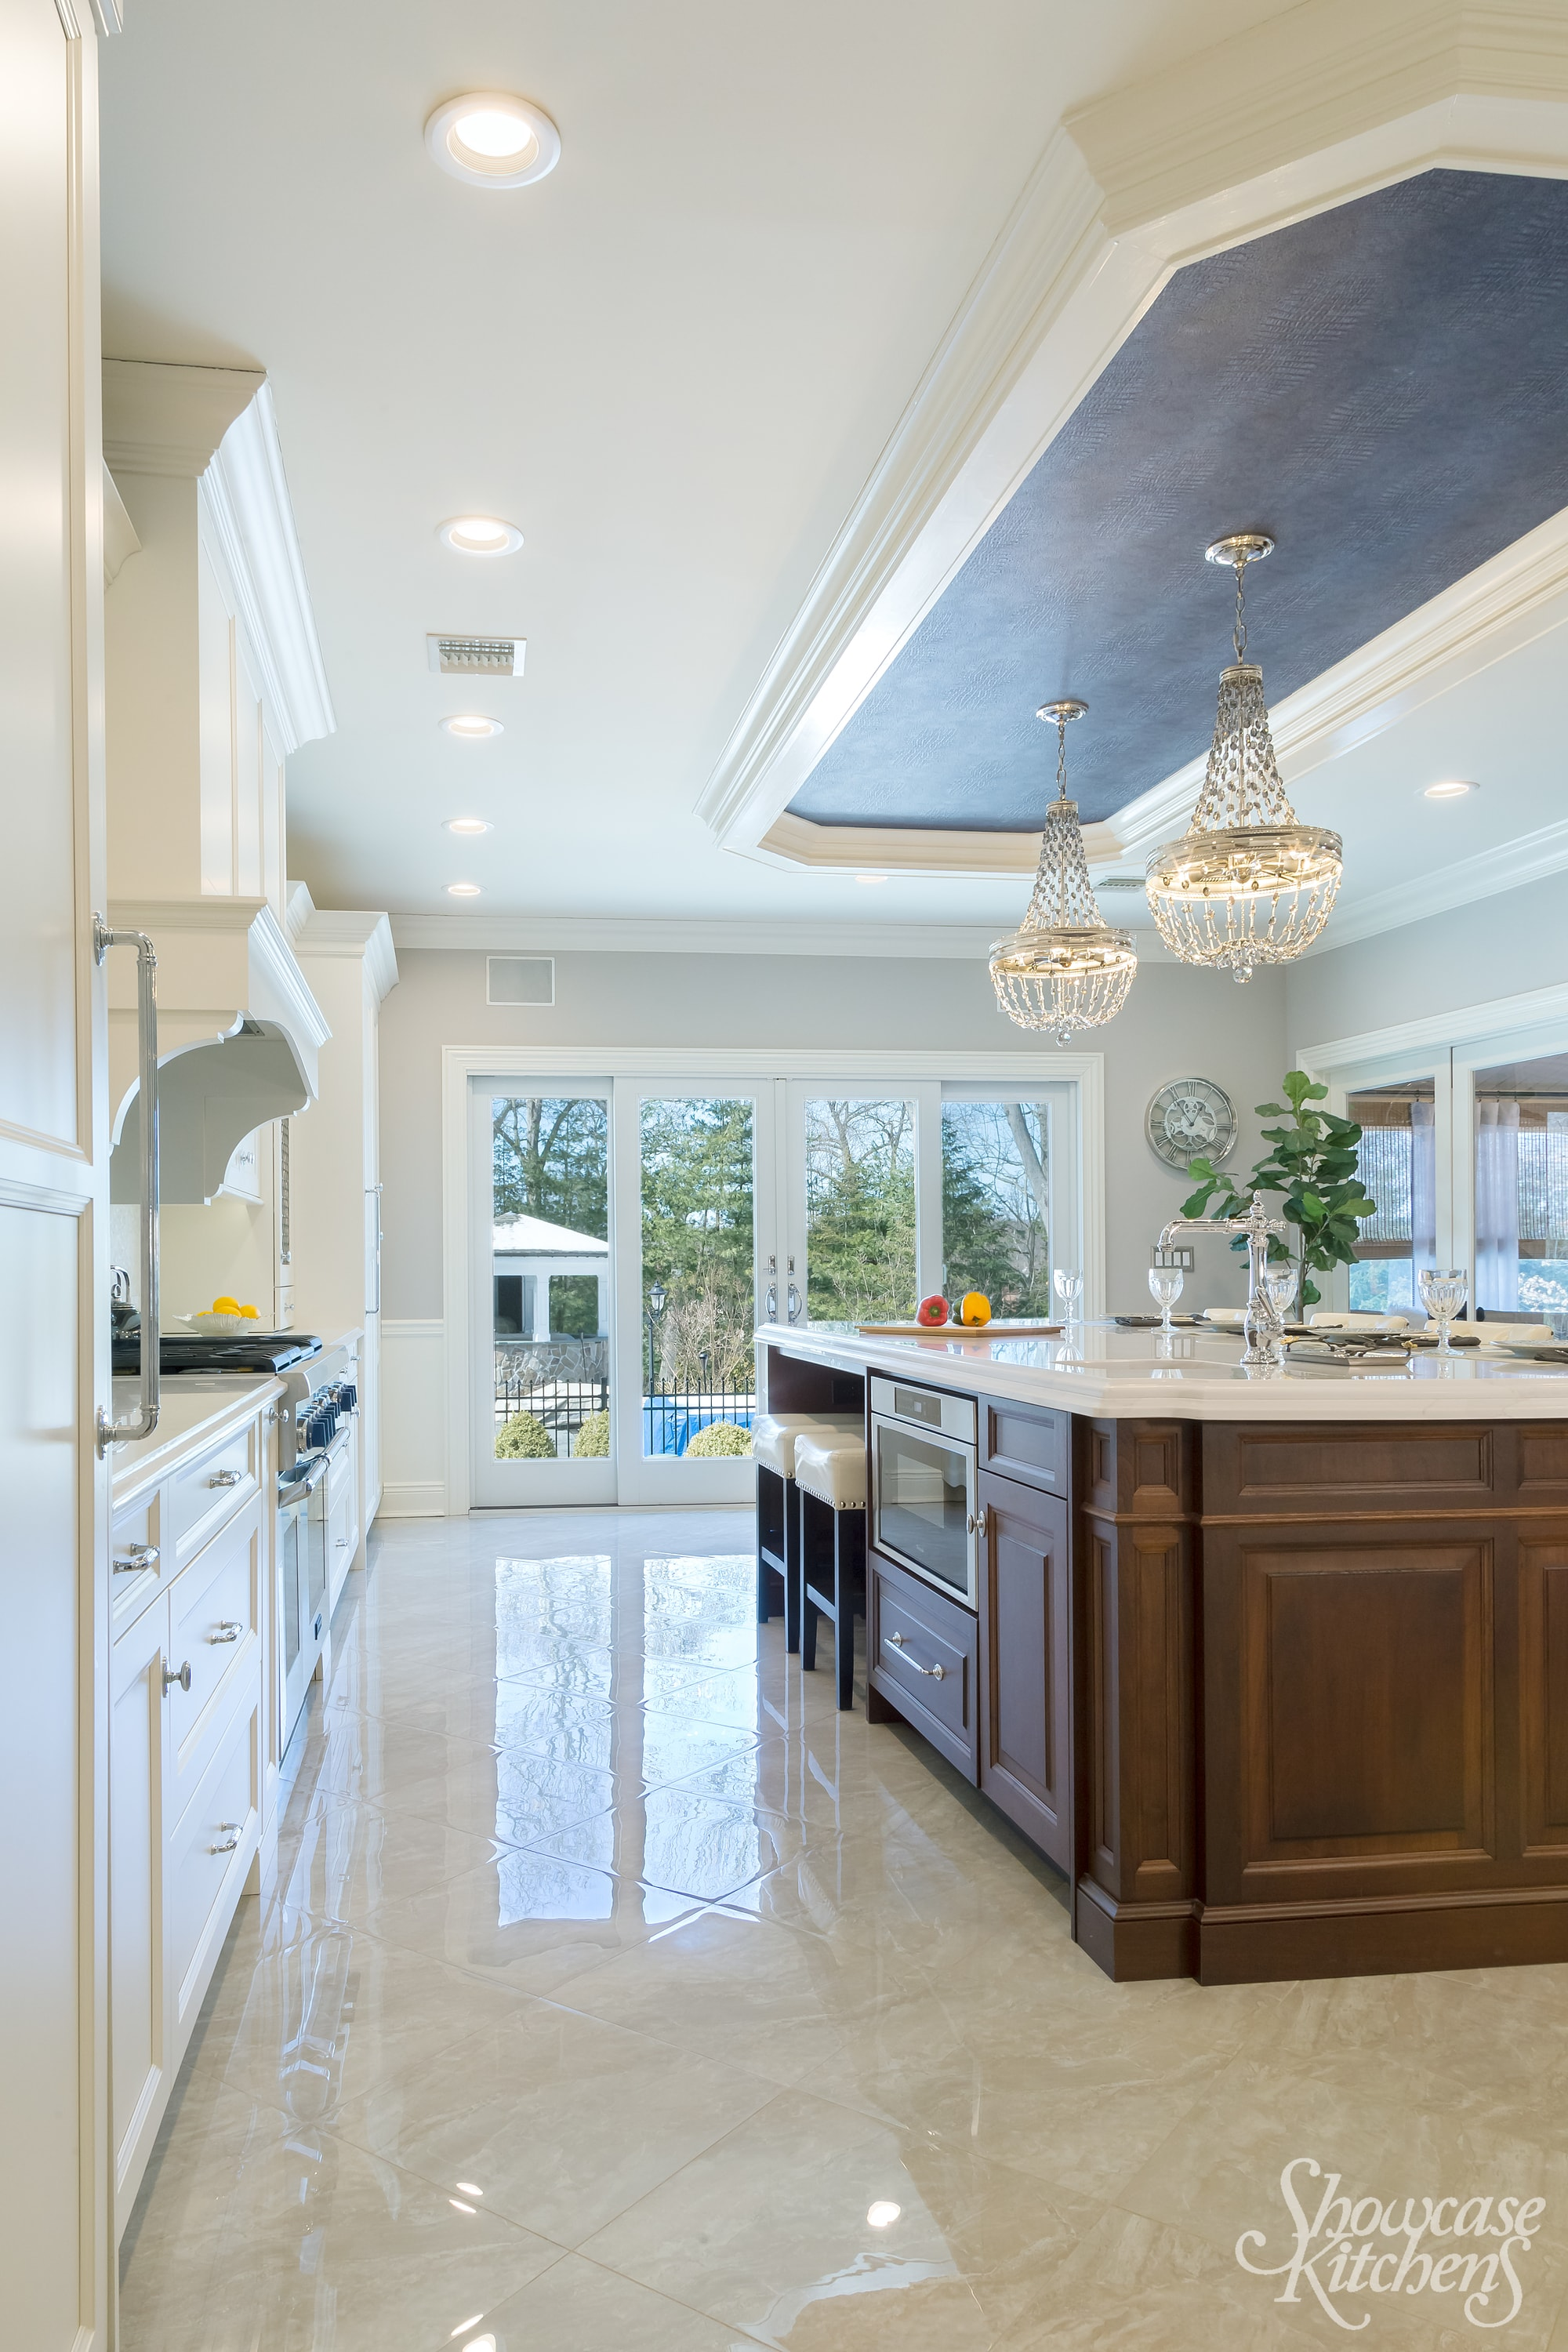 Transitional style kitchen with wooden center island and marble countertop